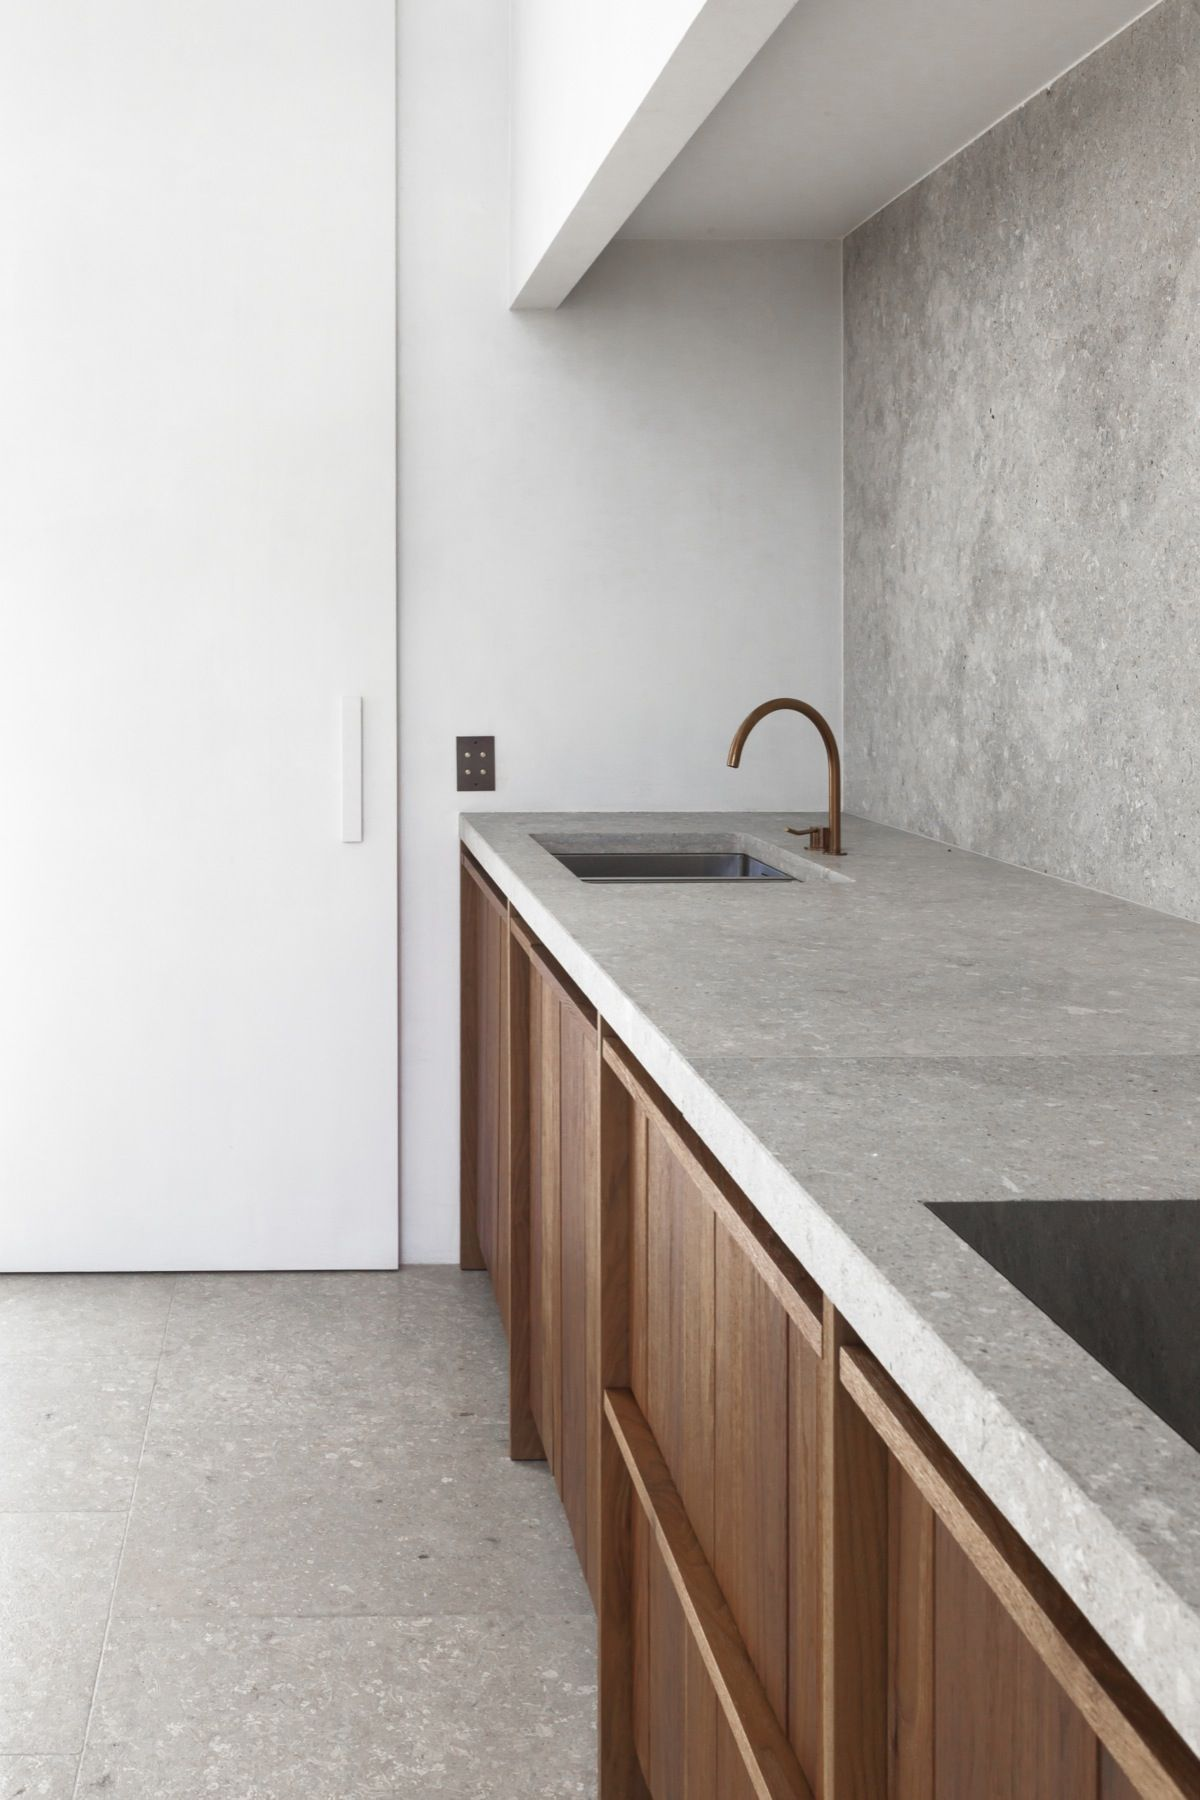 Best Wooden Cabinets Concrete Countertops And Backsplash Grey 400 x 300